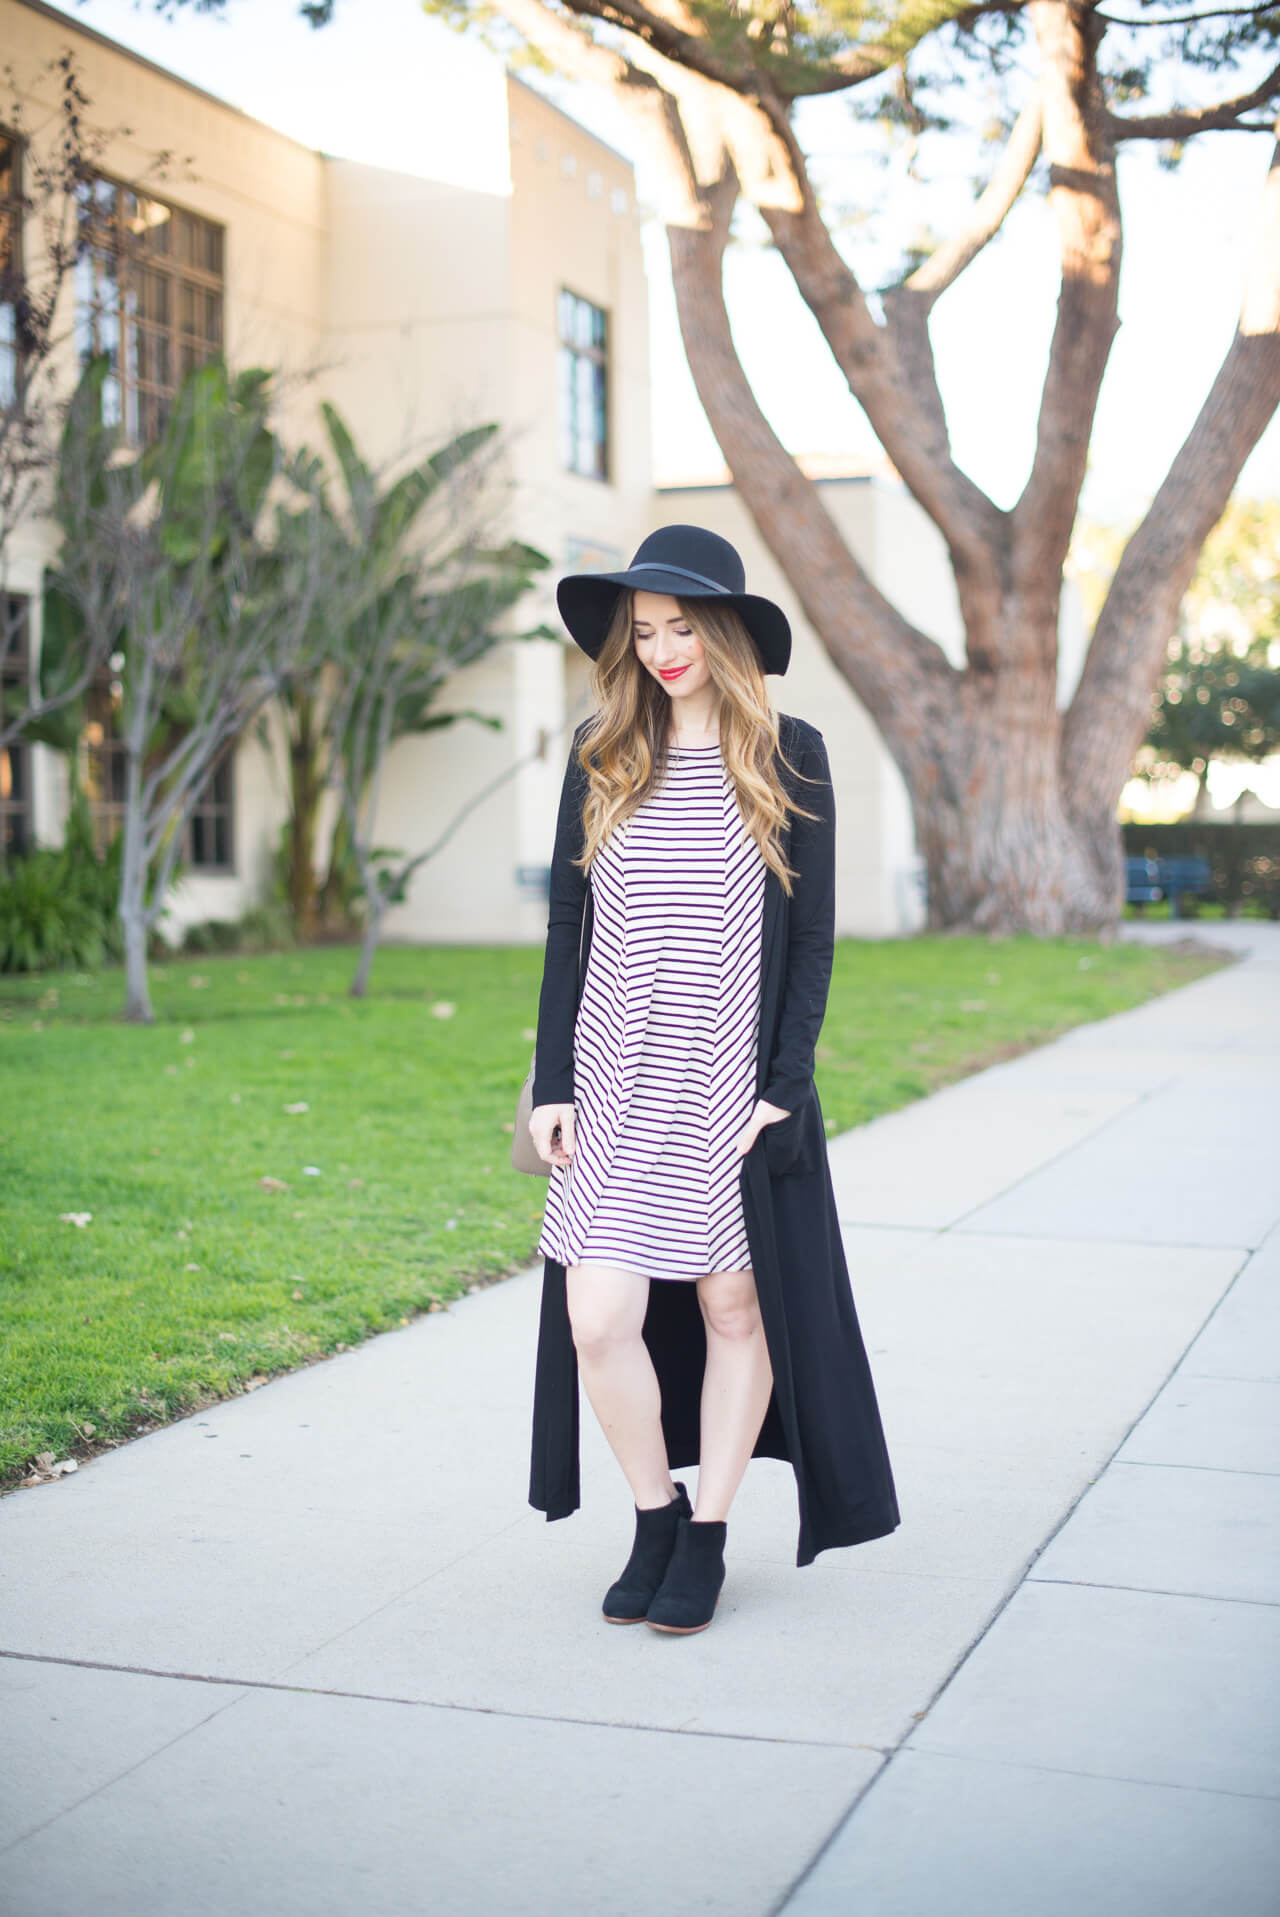 sharing one of my style challenges with this striped dress outfit